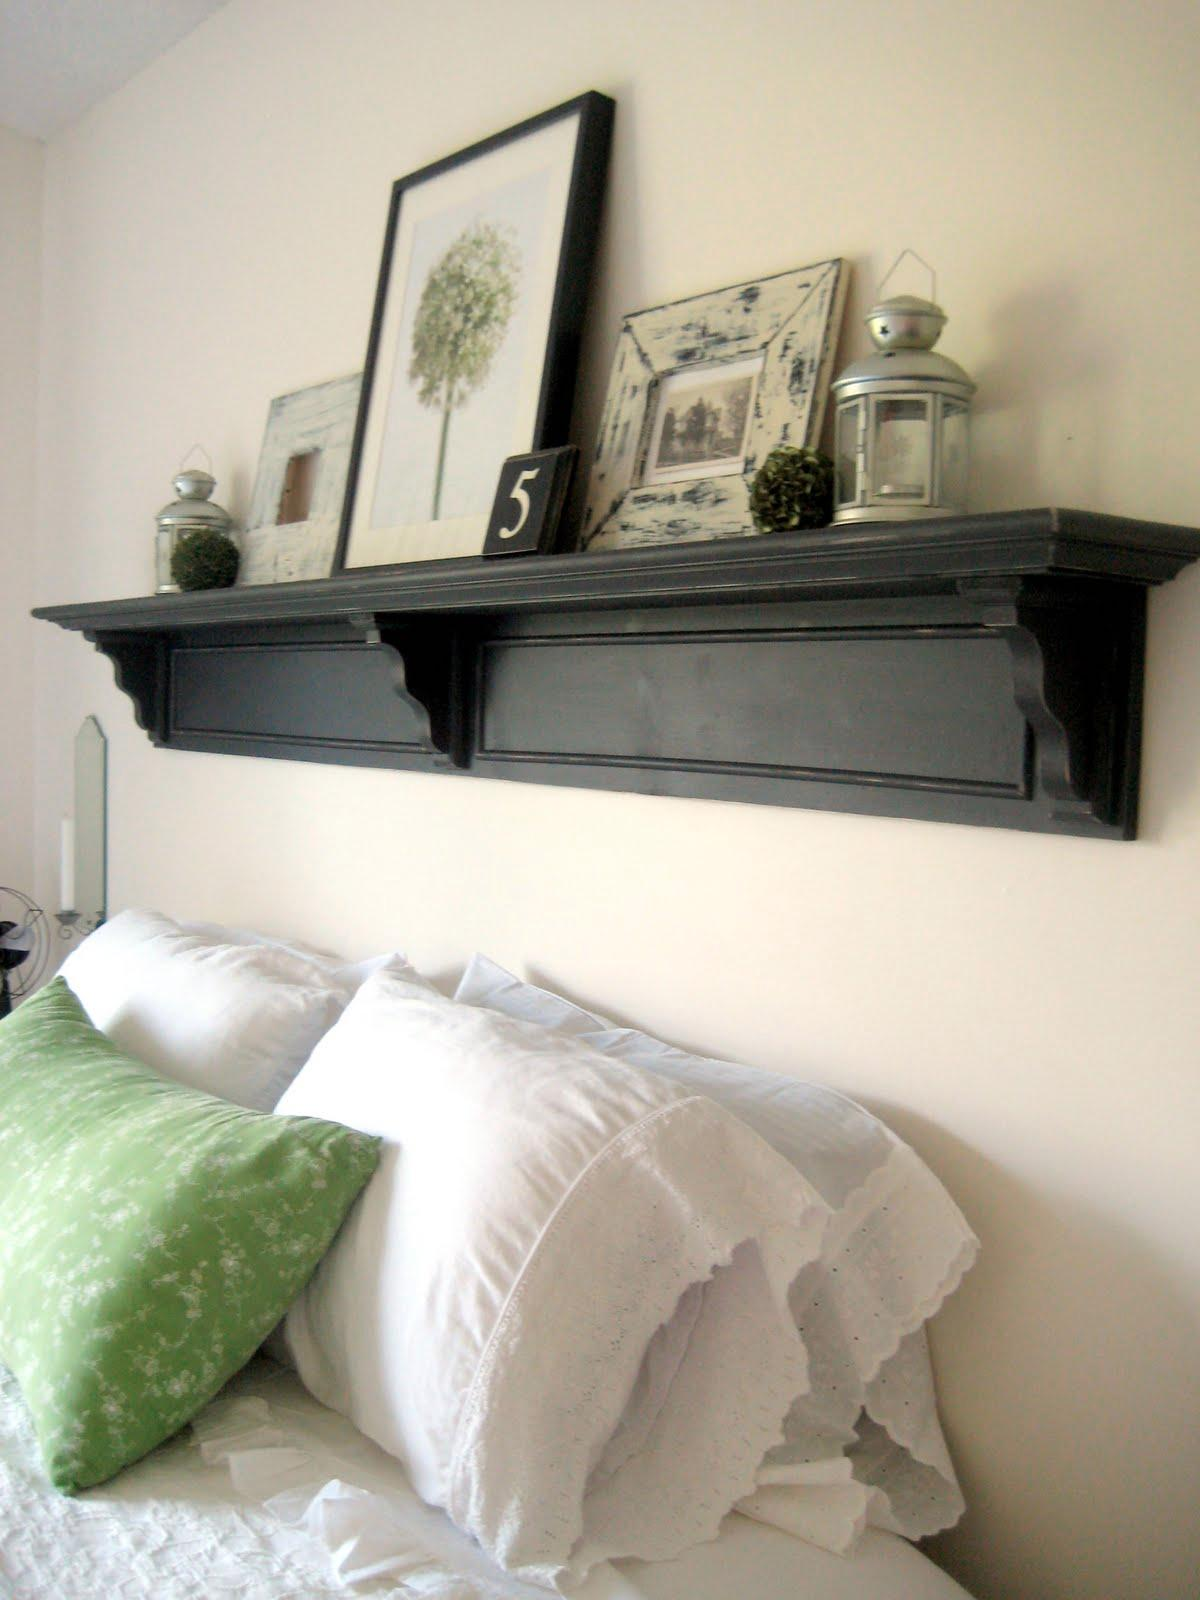 shelving how can hang shelf with visible fasteners home floating shelves using command strips enter description here garage corner purple king size bedding narrow kitchen island